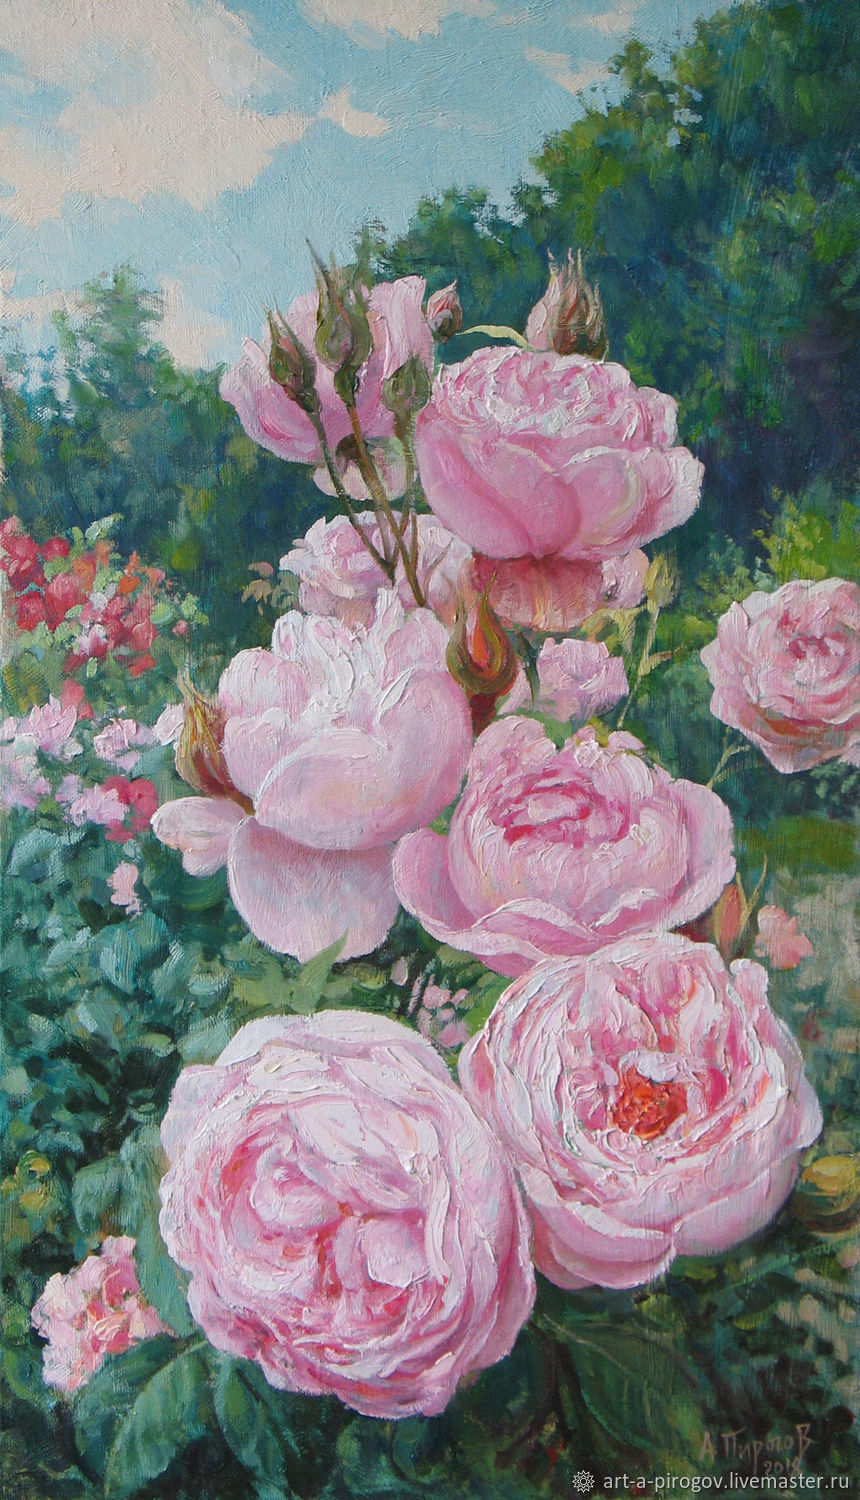 Pink Roses On The Street The Rose Bush Painting With Flowers